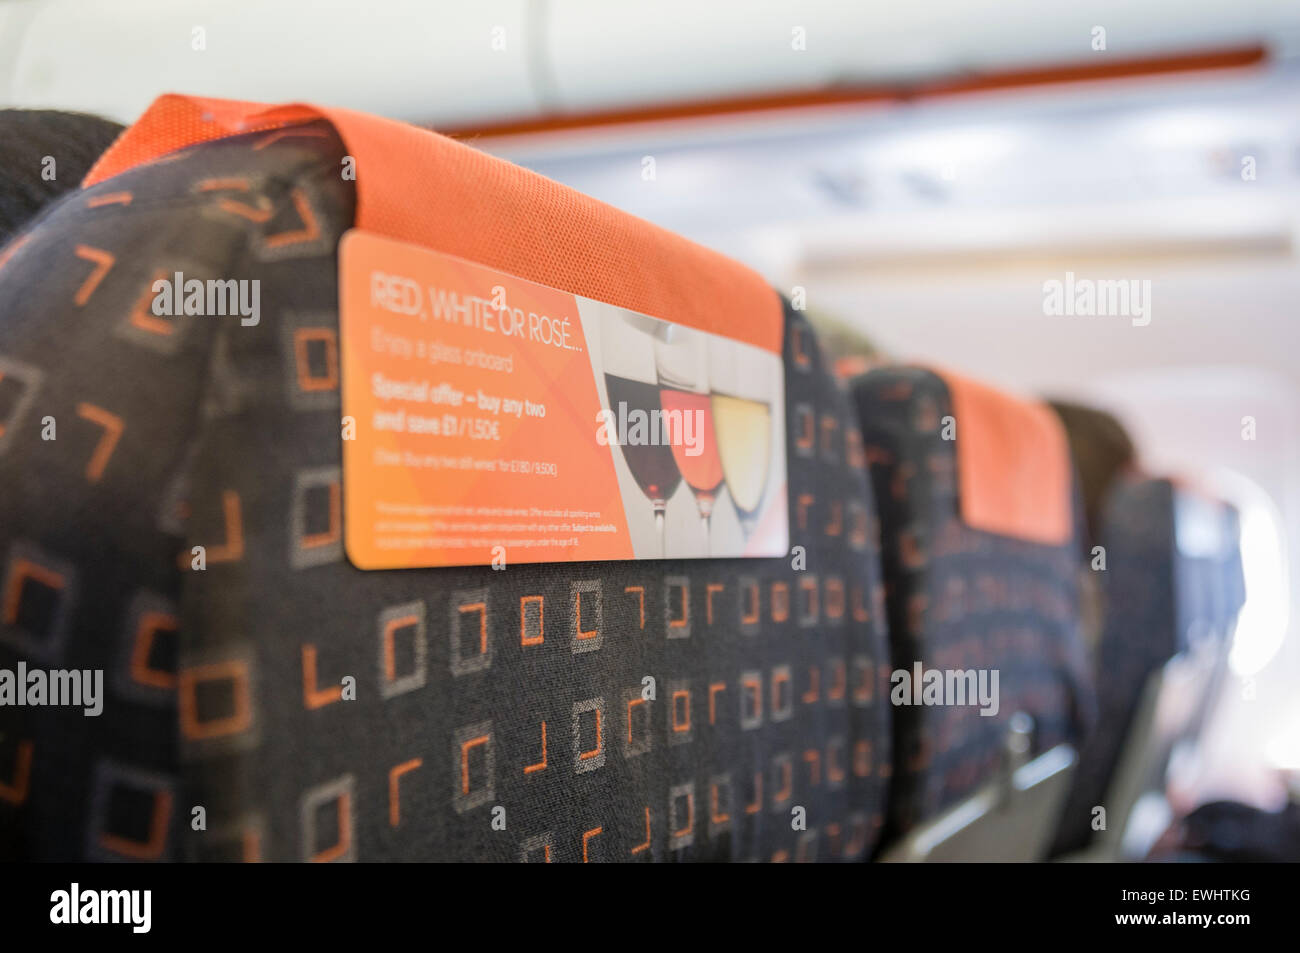 Advertisement on the back of a seat on an Easyjet flight advertising wine for sale. - Stock Image